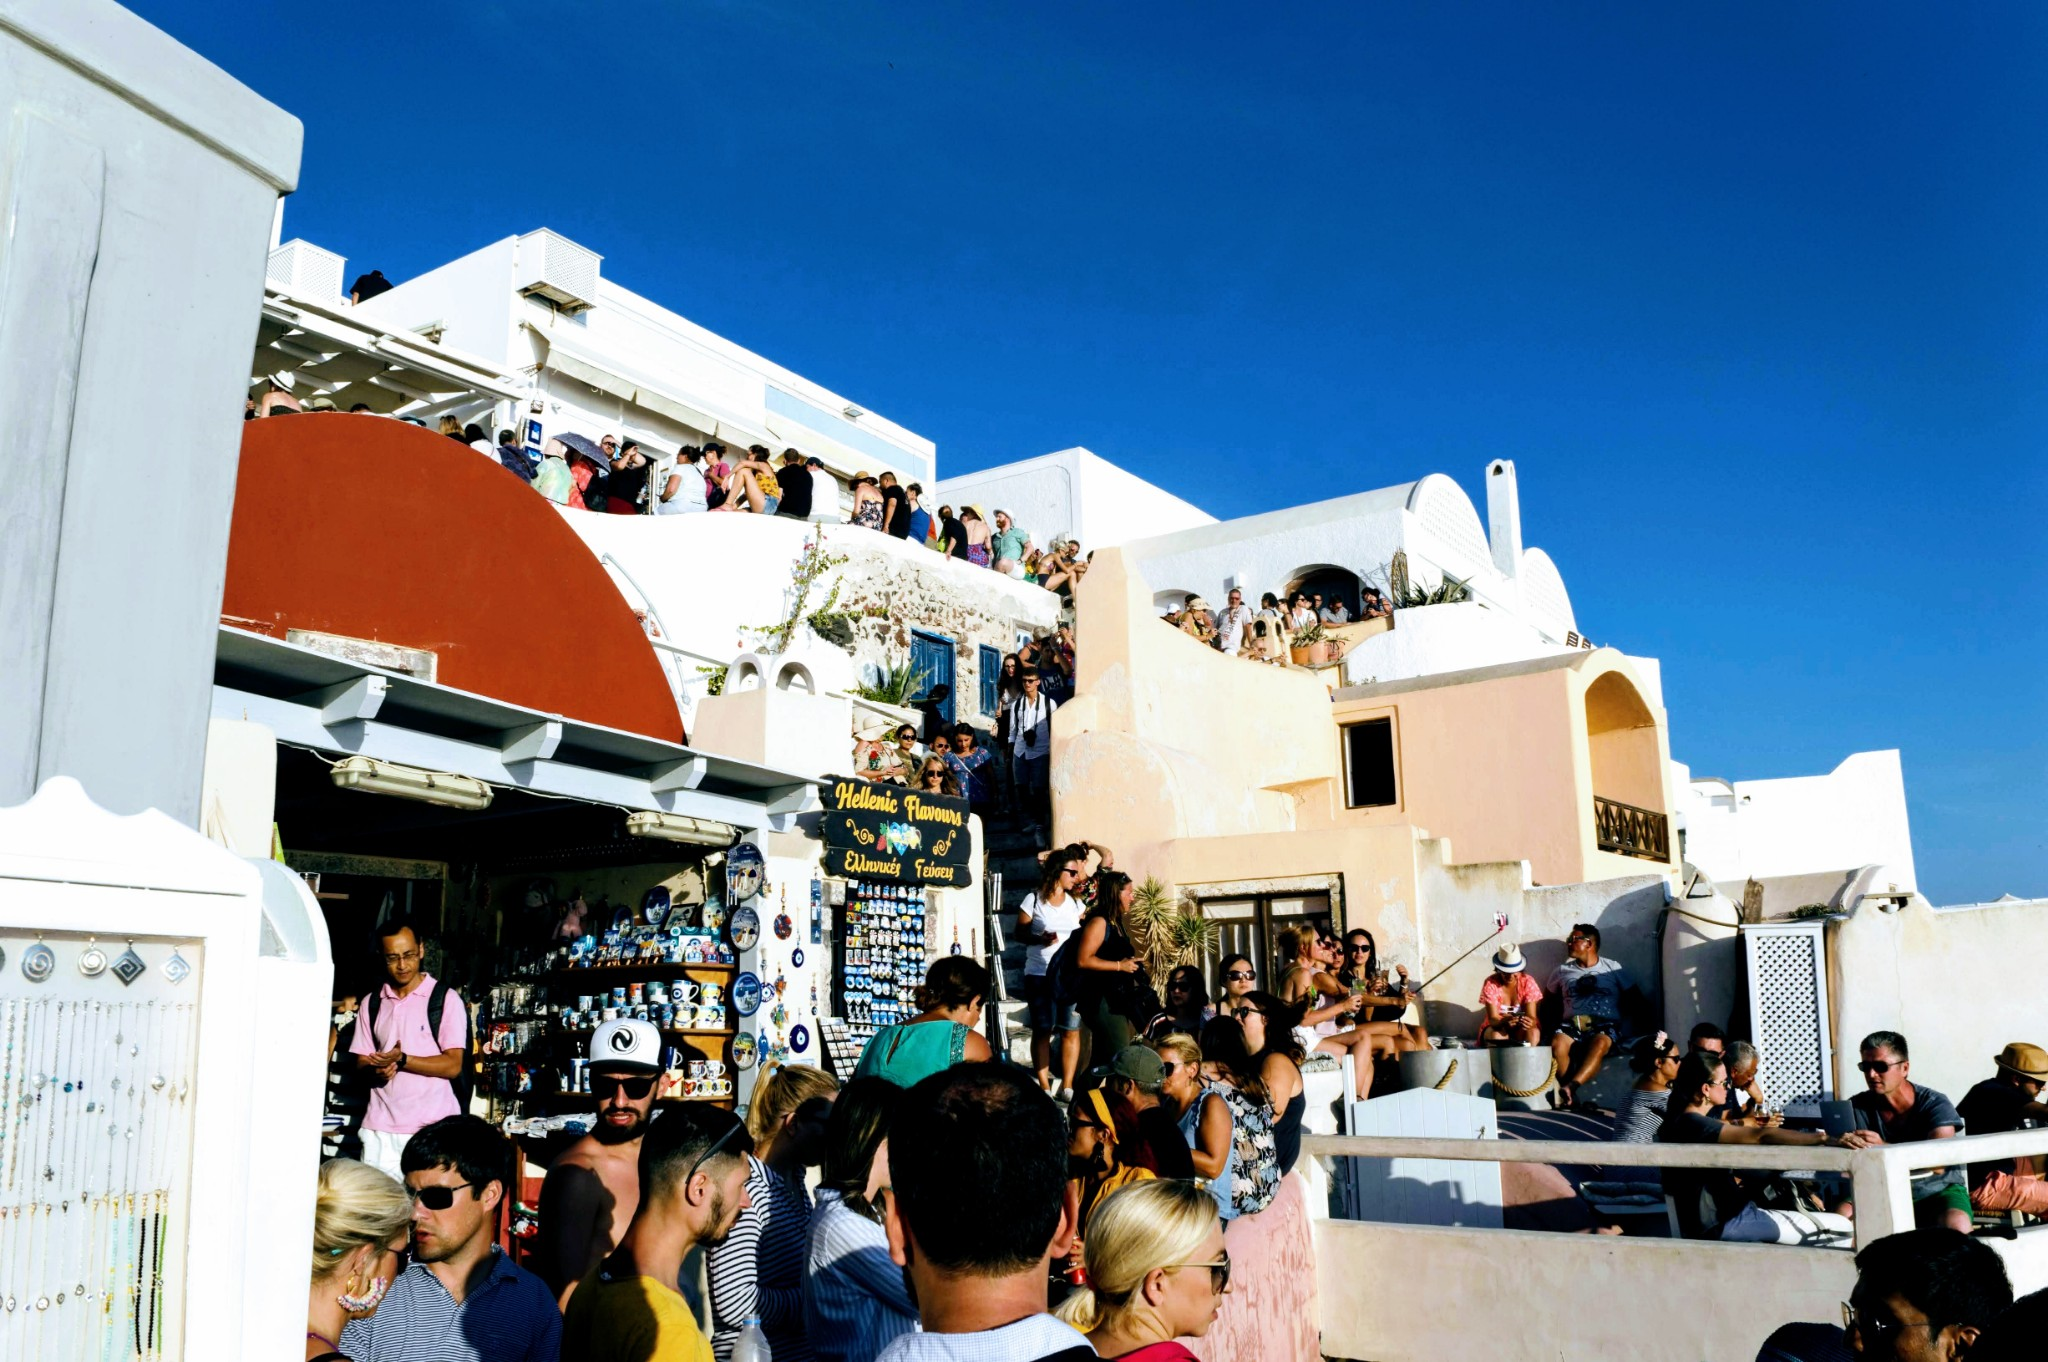 Oia sunset queue - Santorini, Greece - Honeymoon Part 2 - Oia in Santorini Greece is beautiful with its pretty caldera view, sunsets, windmills and quaint pedestrian streets, we headed here for our Honeymoon Part 2! - Greek Island, Europe - Veritru